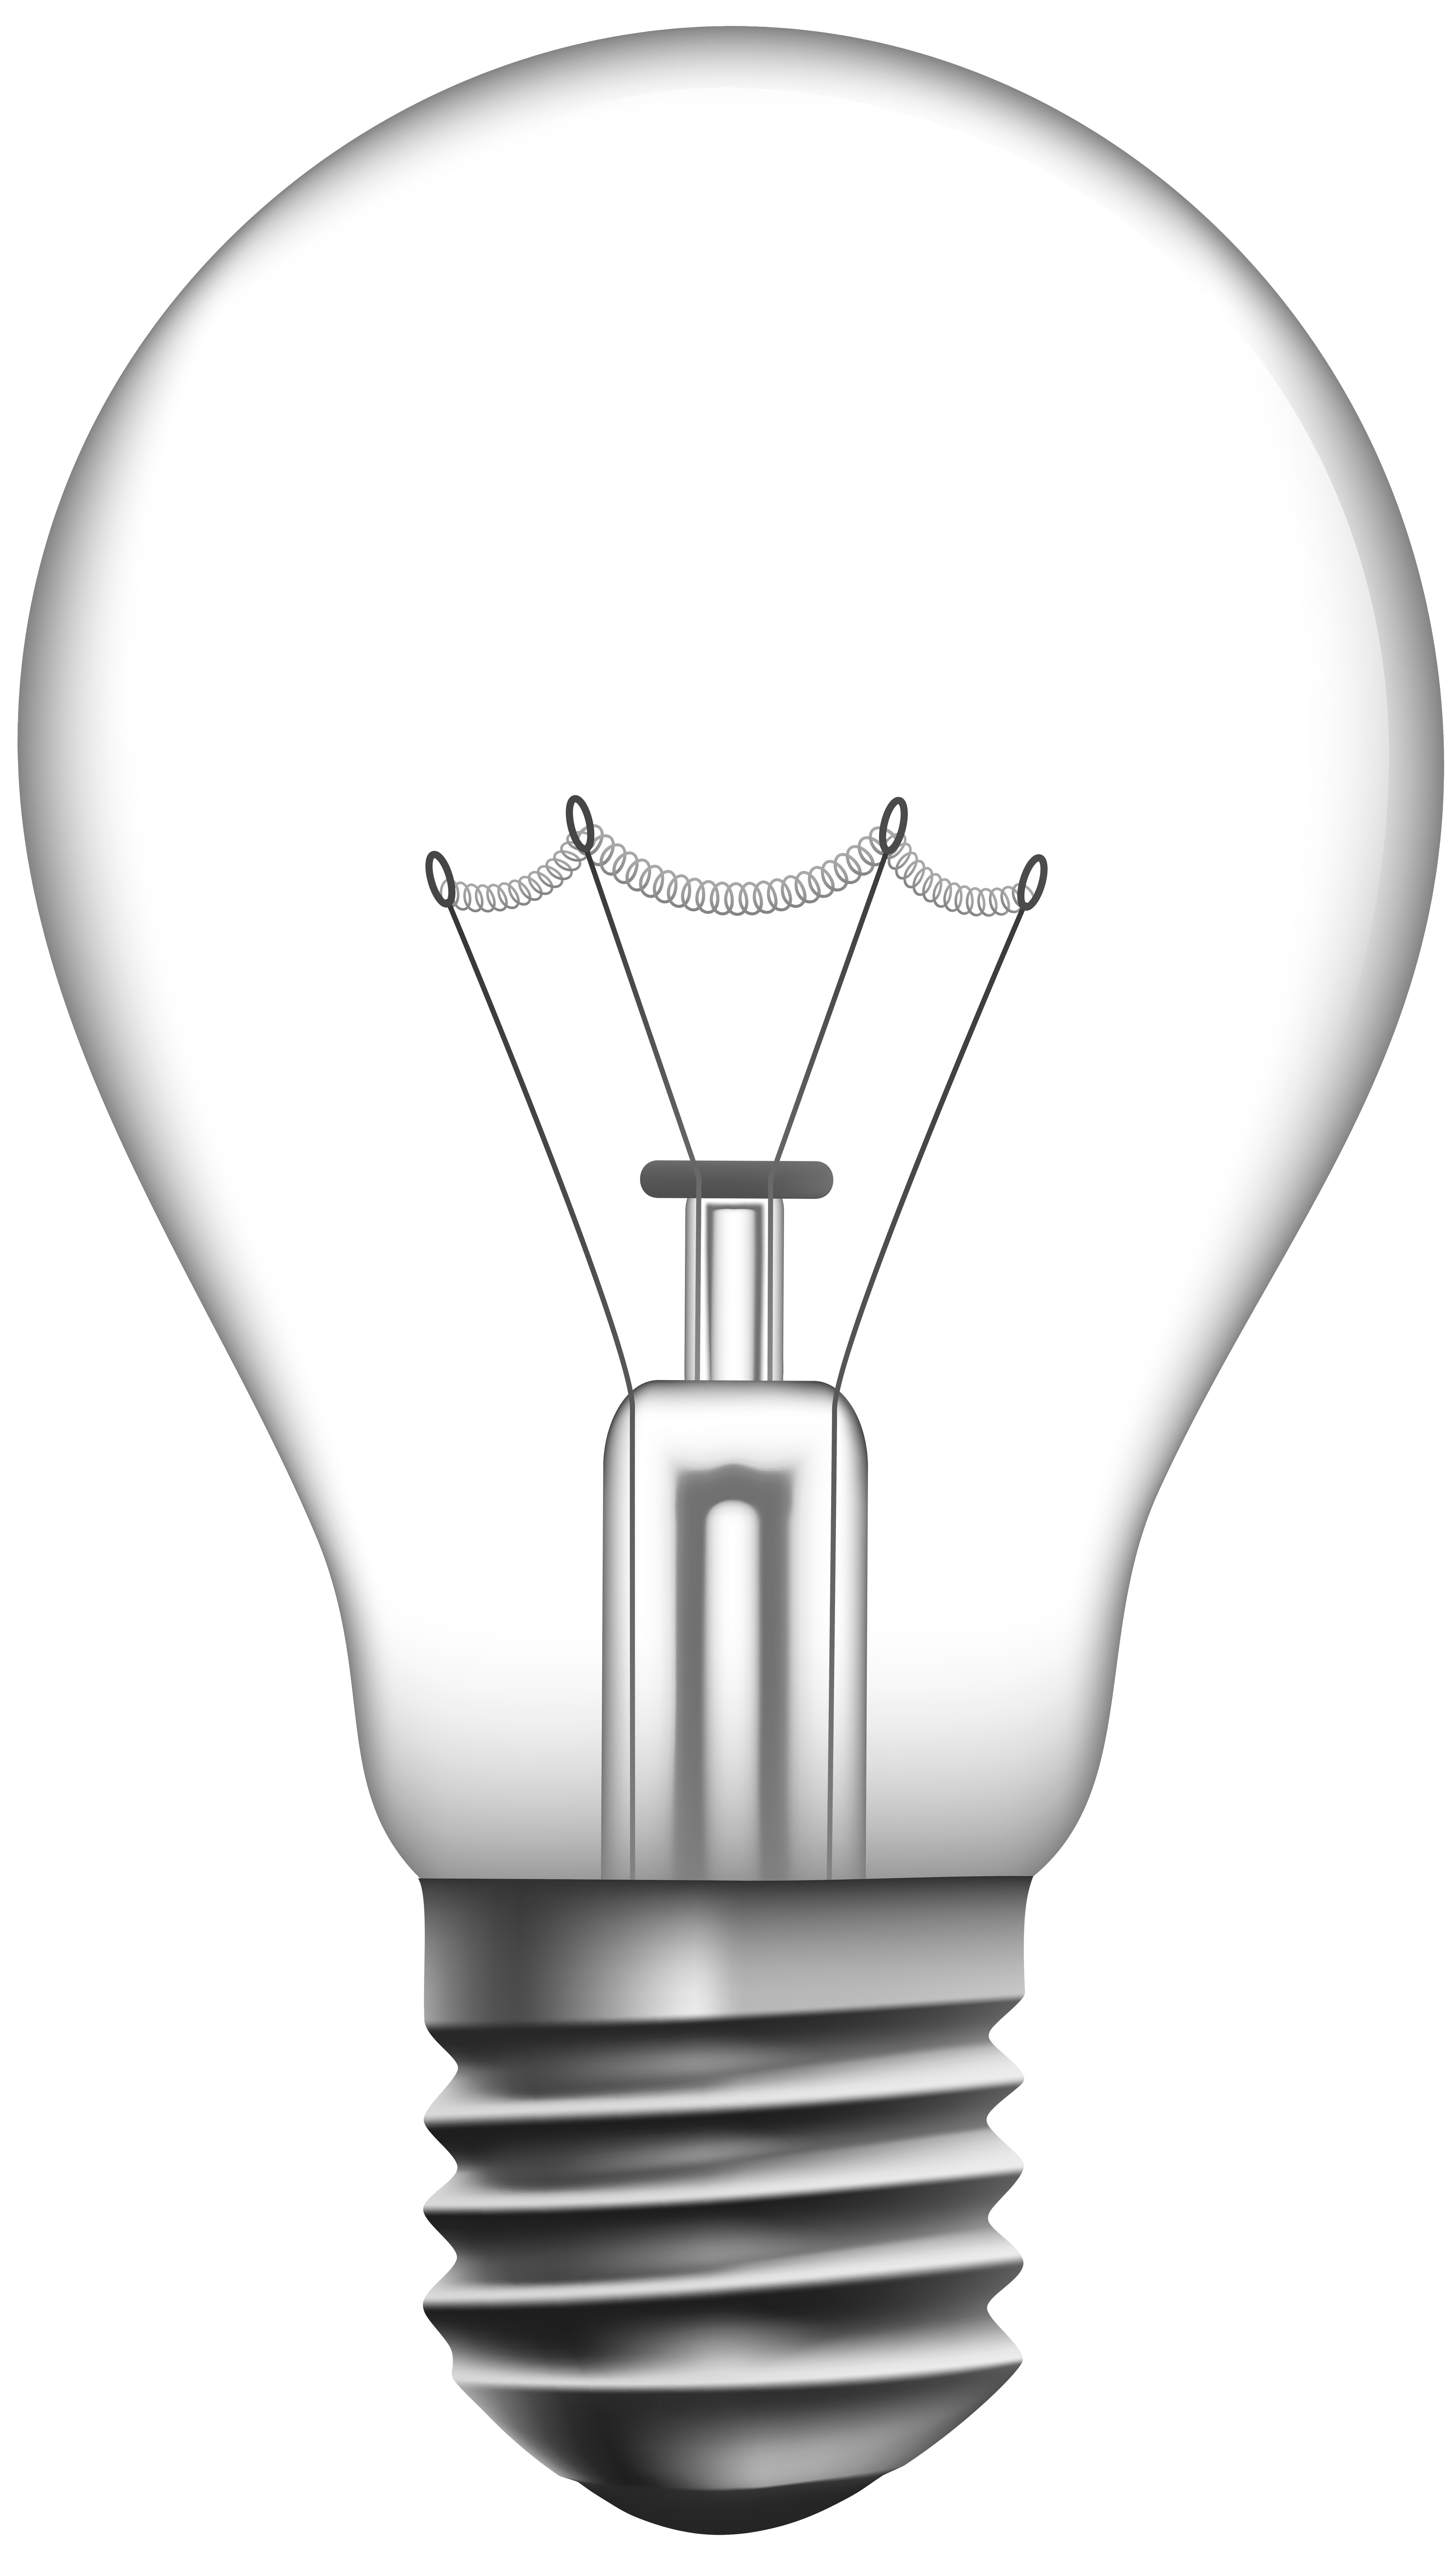 pin Light clipart simple #14 - Light Bulb PNG